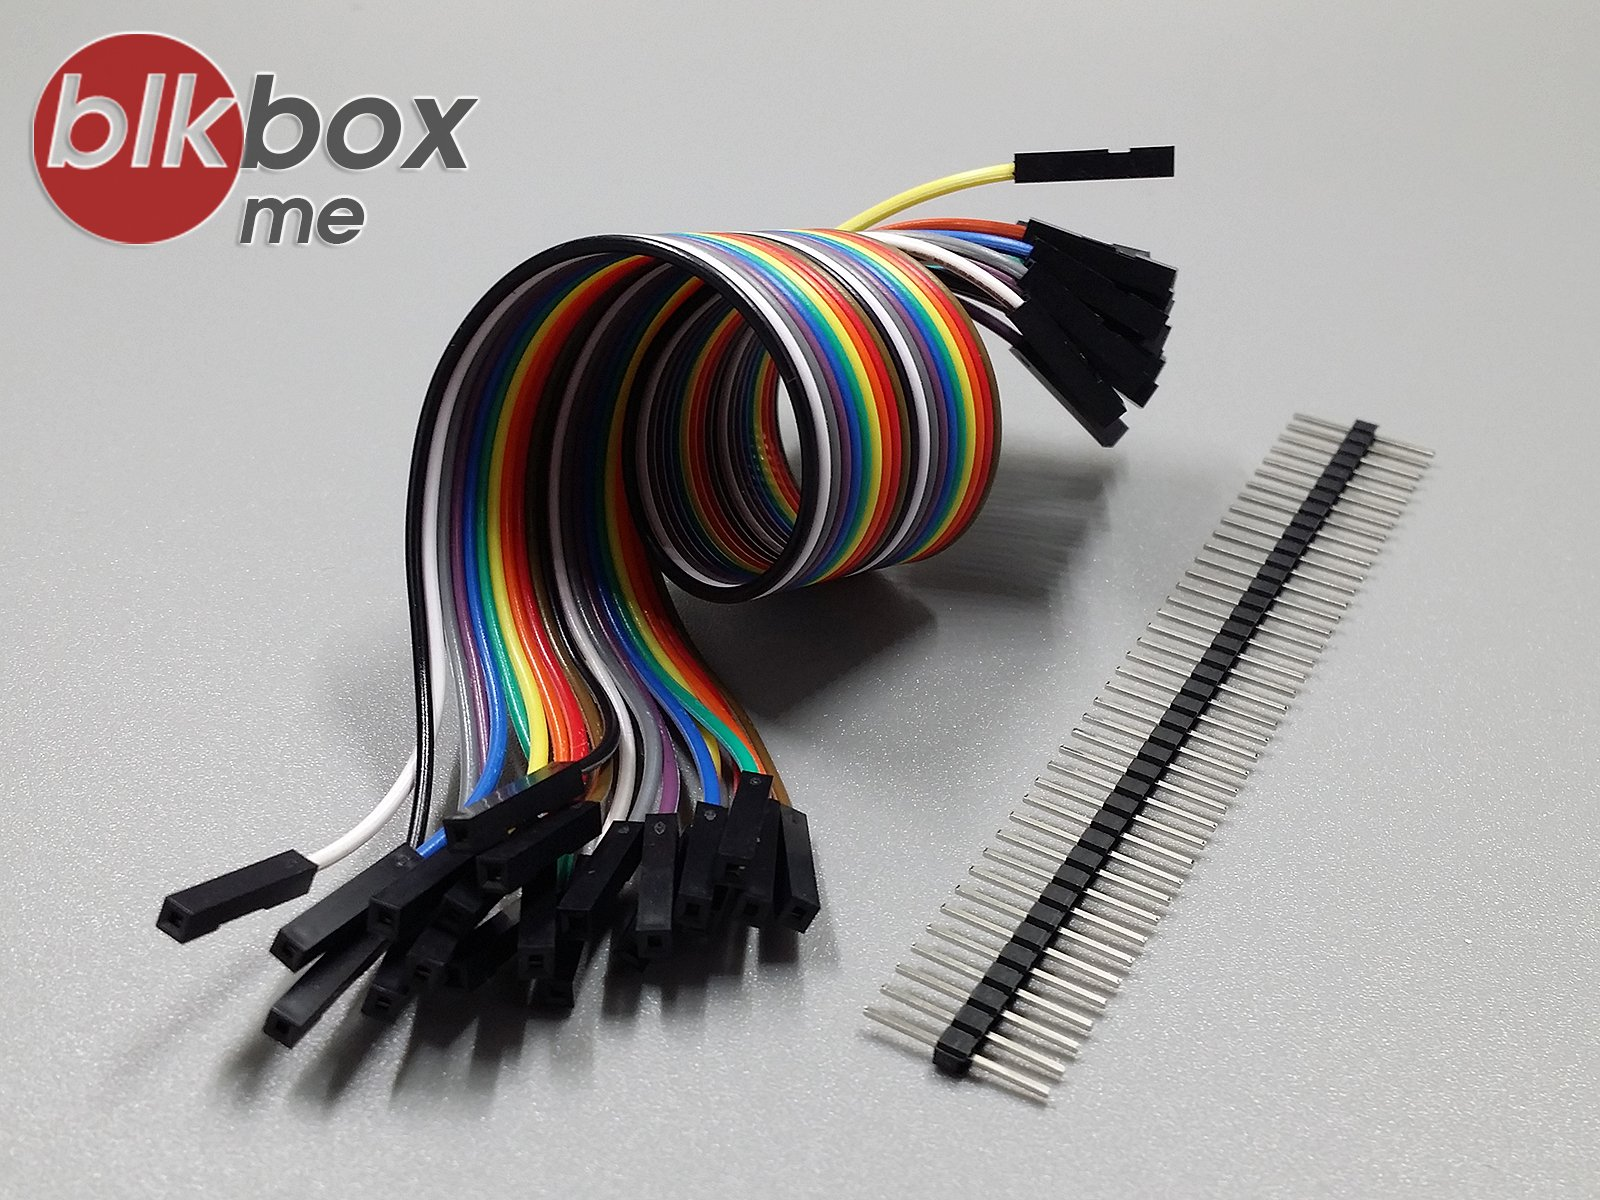 Flexible Flat Cable For Dvd S : Flexible flat cable and pin header from blkbox on tindie